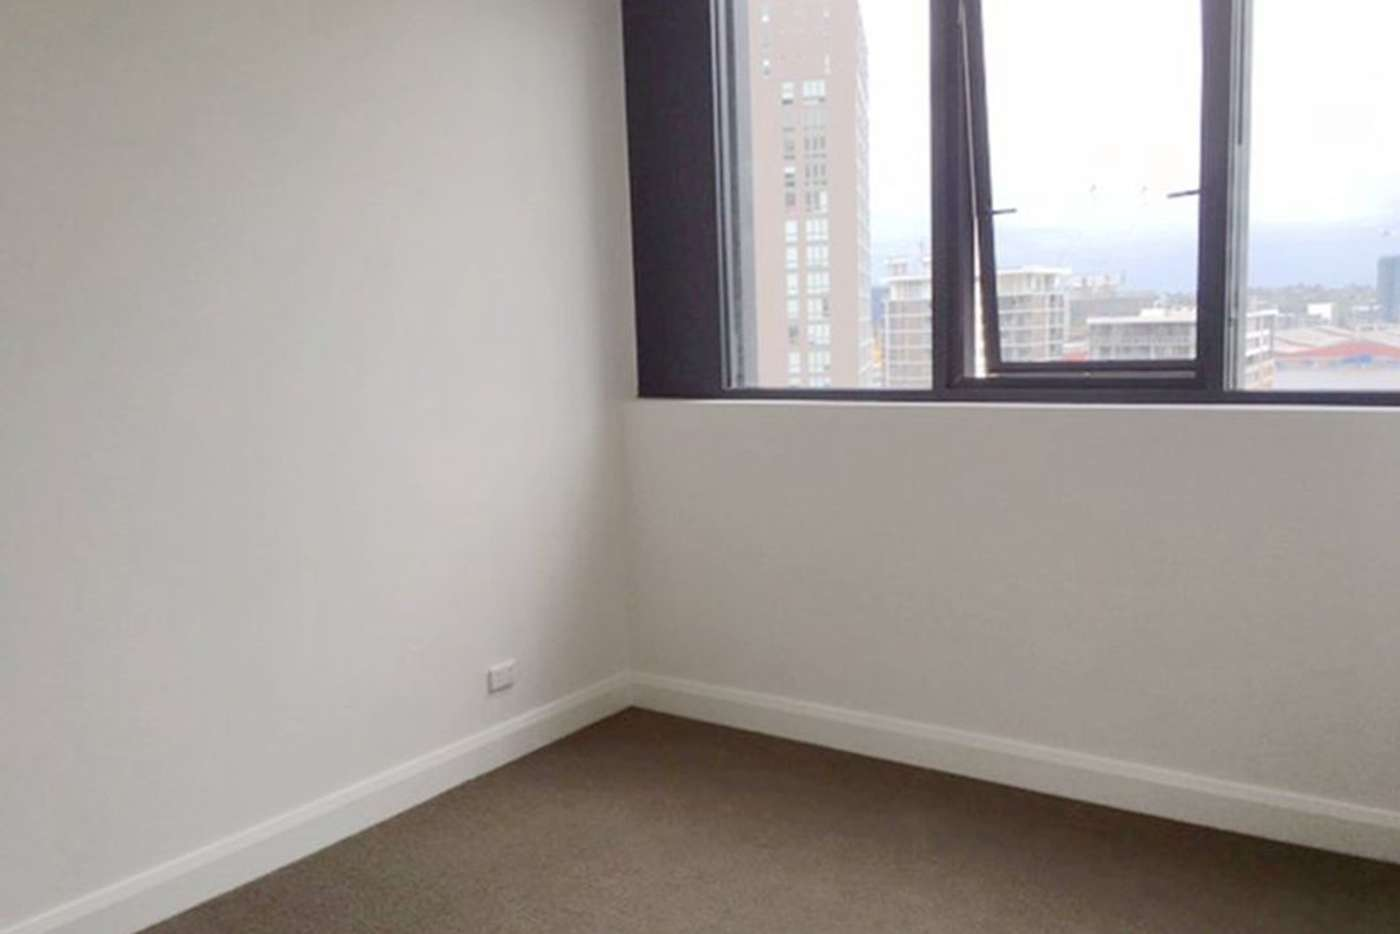 Sixth view of Homely apartment listing, 401/40 Walker Street, Rhodes NSW 2138